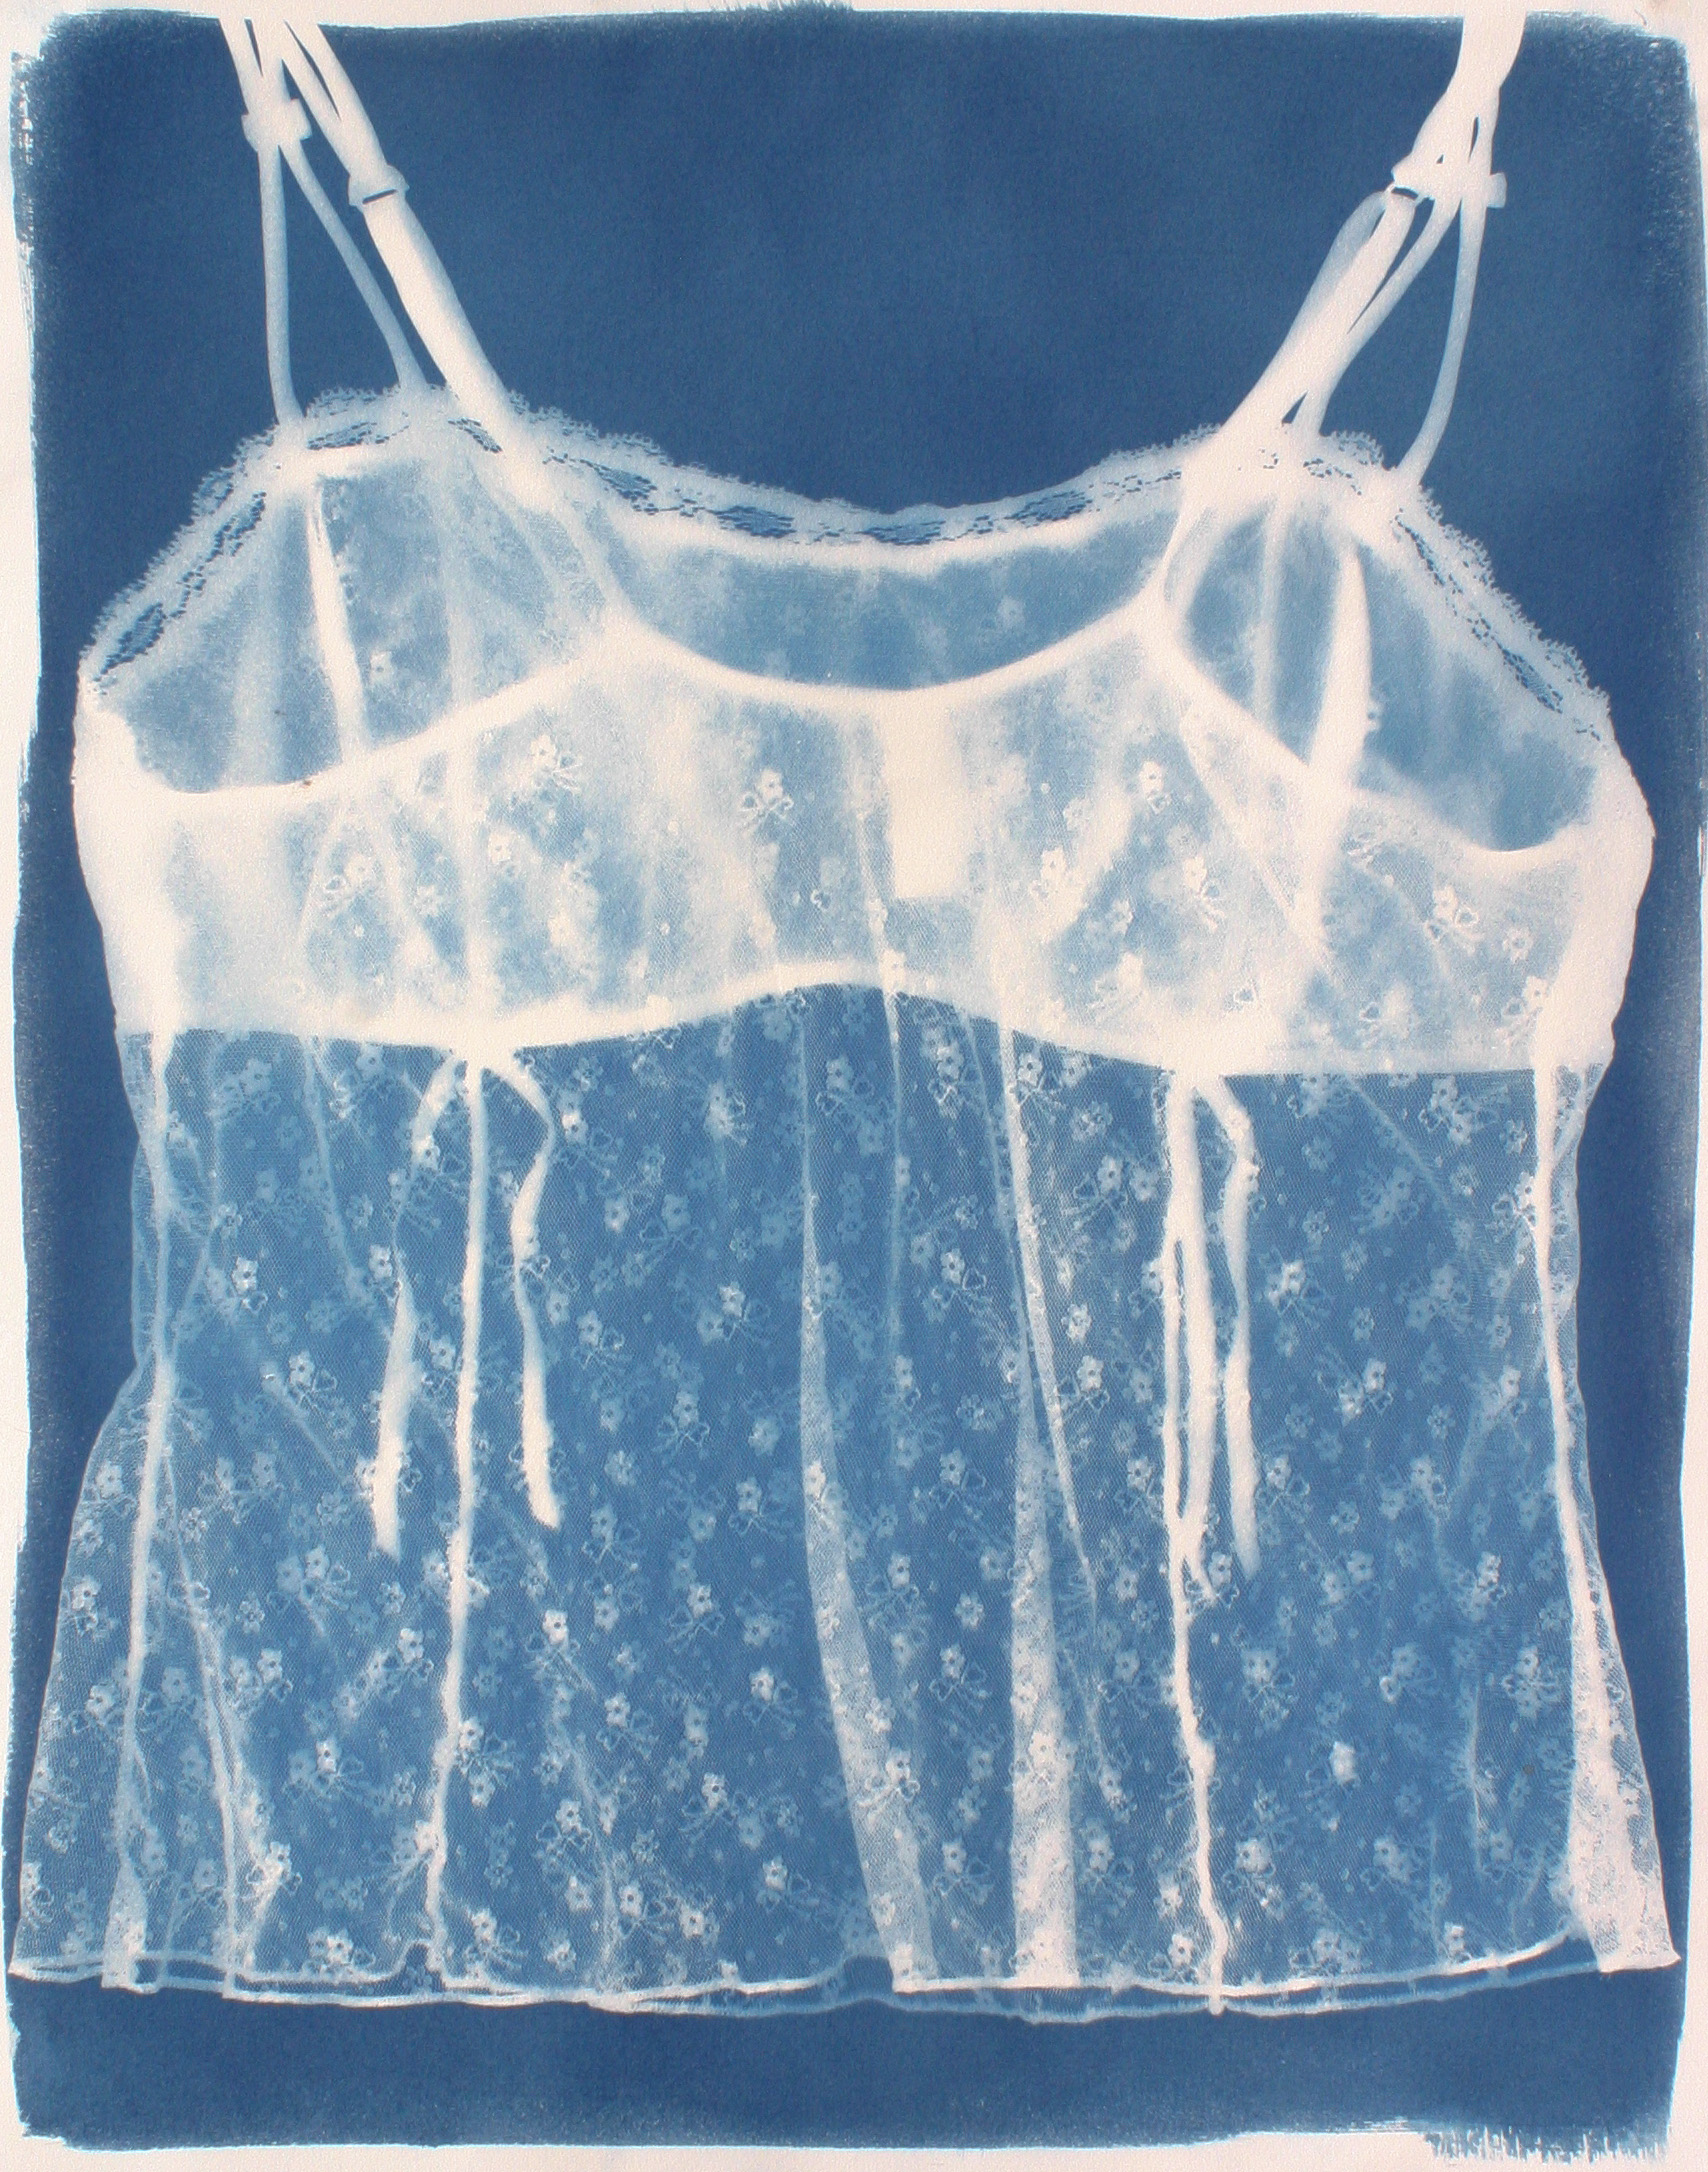 Dirty Laundry Series: Camisole